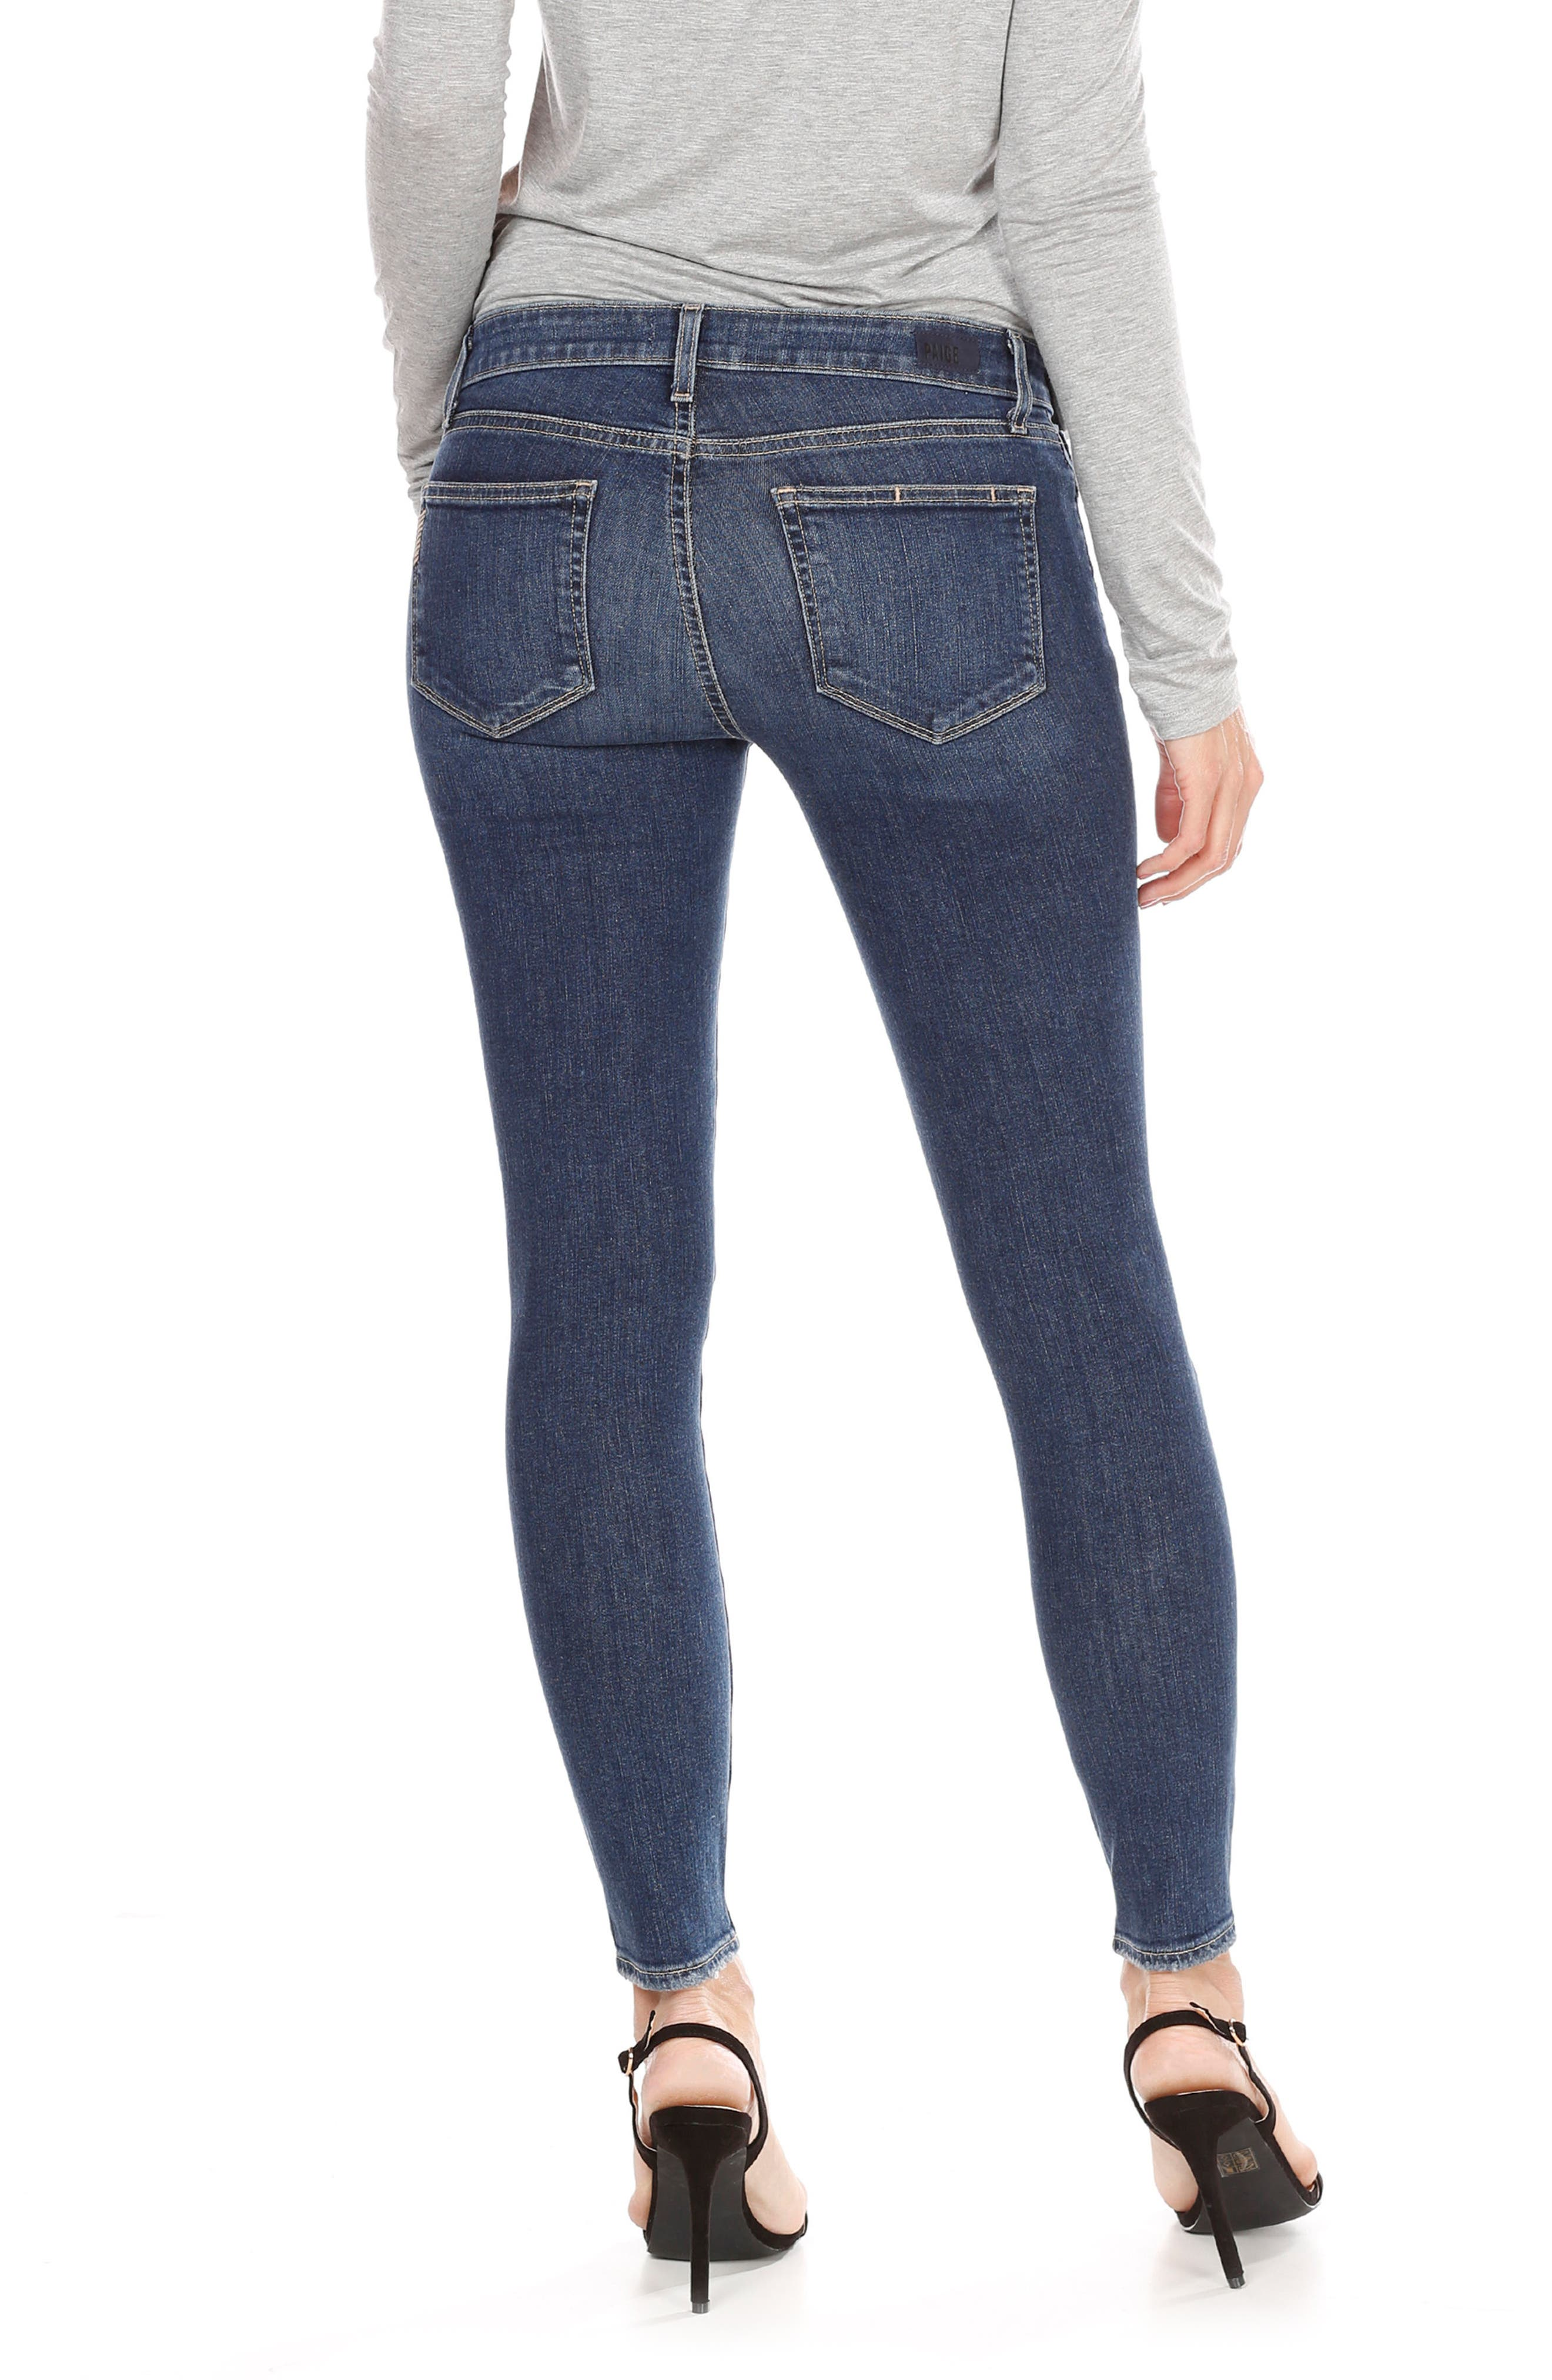 Verdugo Ripped Ankle Skinny Jeans,                             Alternate thumbnail 2, color,                             Addax Destructed